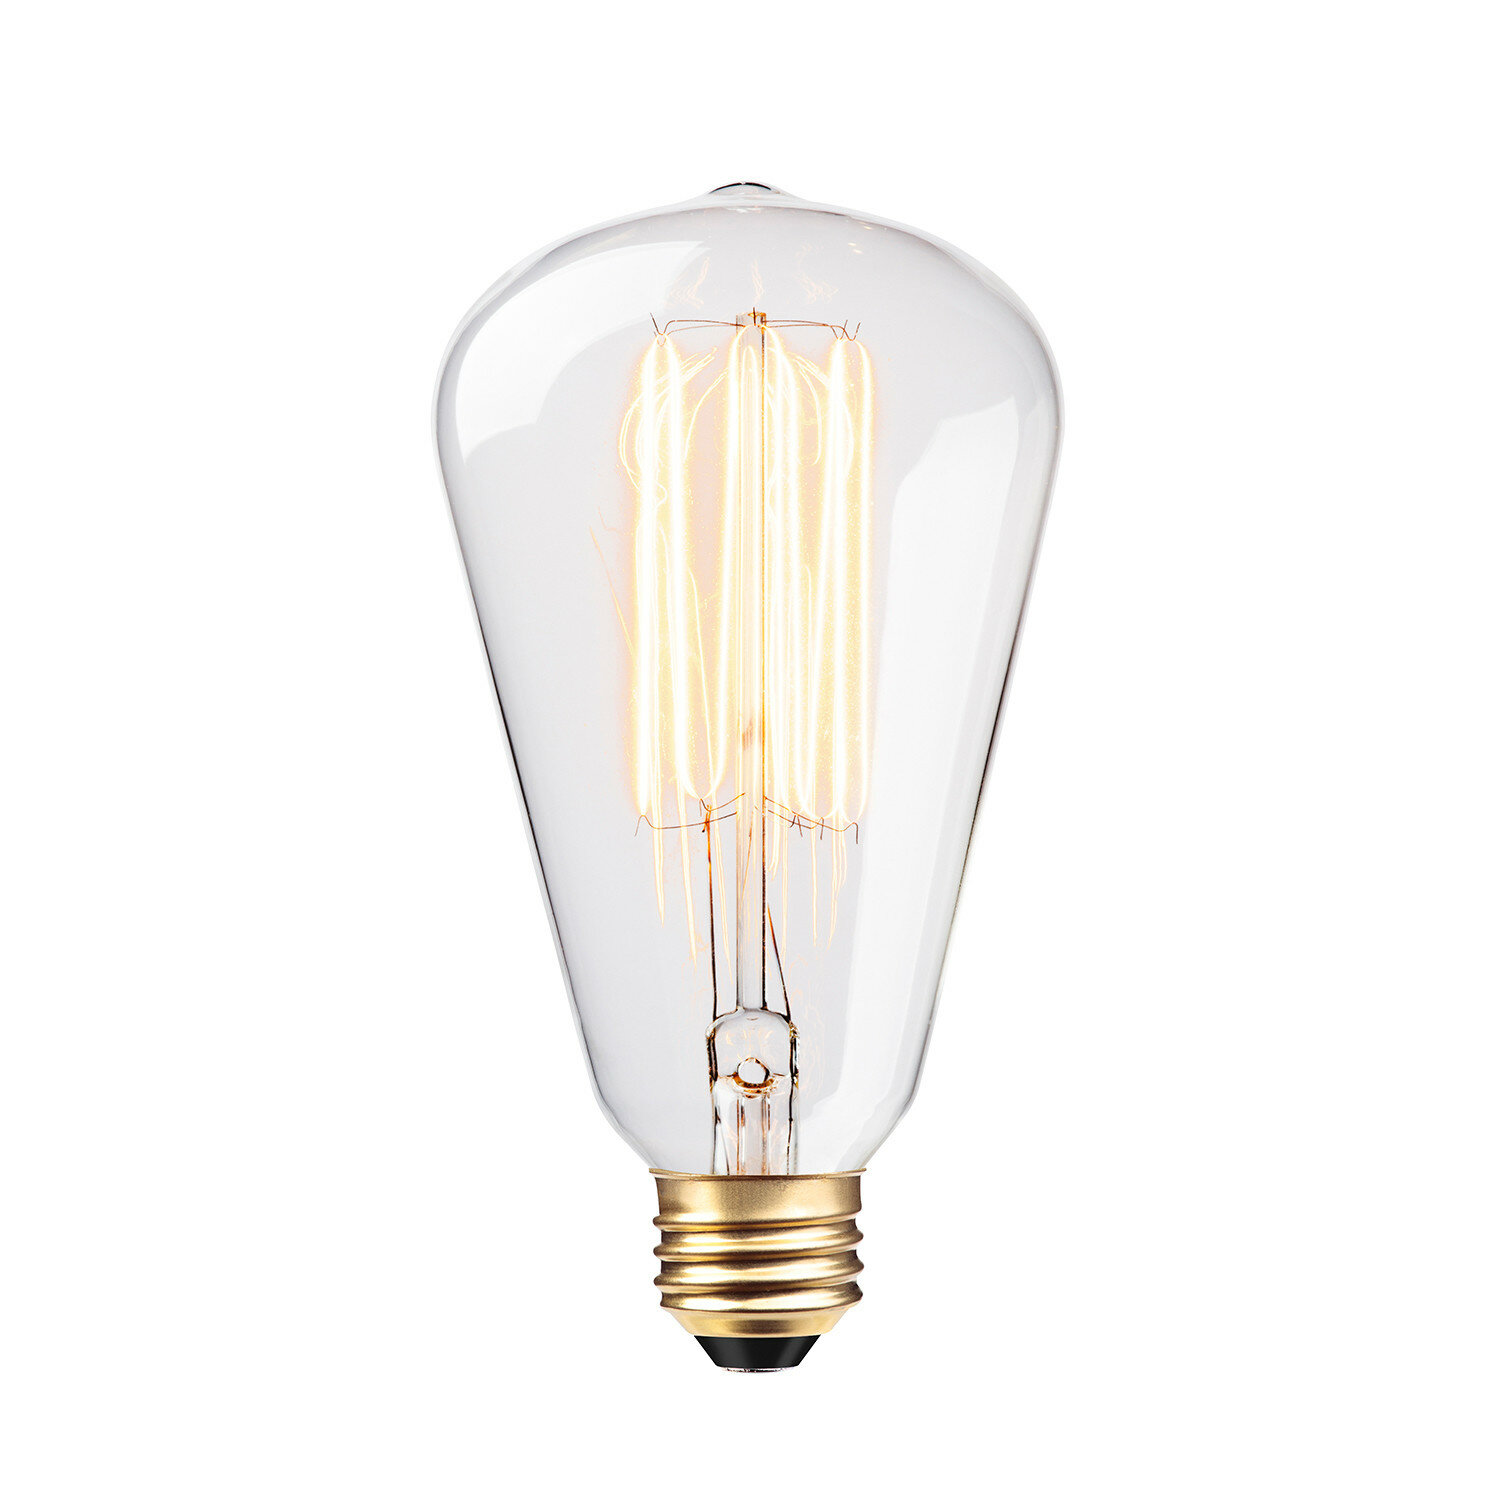 Williston Forge Trahan 60W Incandescent Vintage Filament Light Bulb